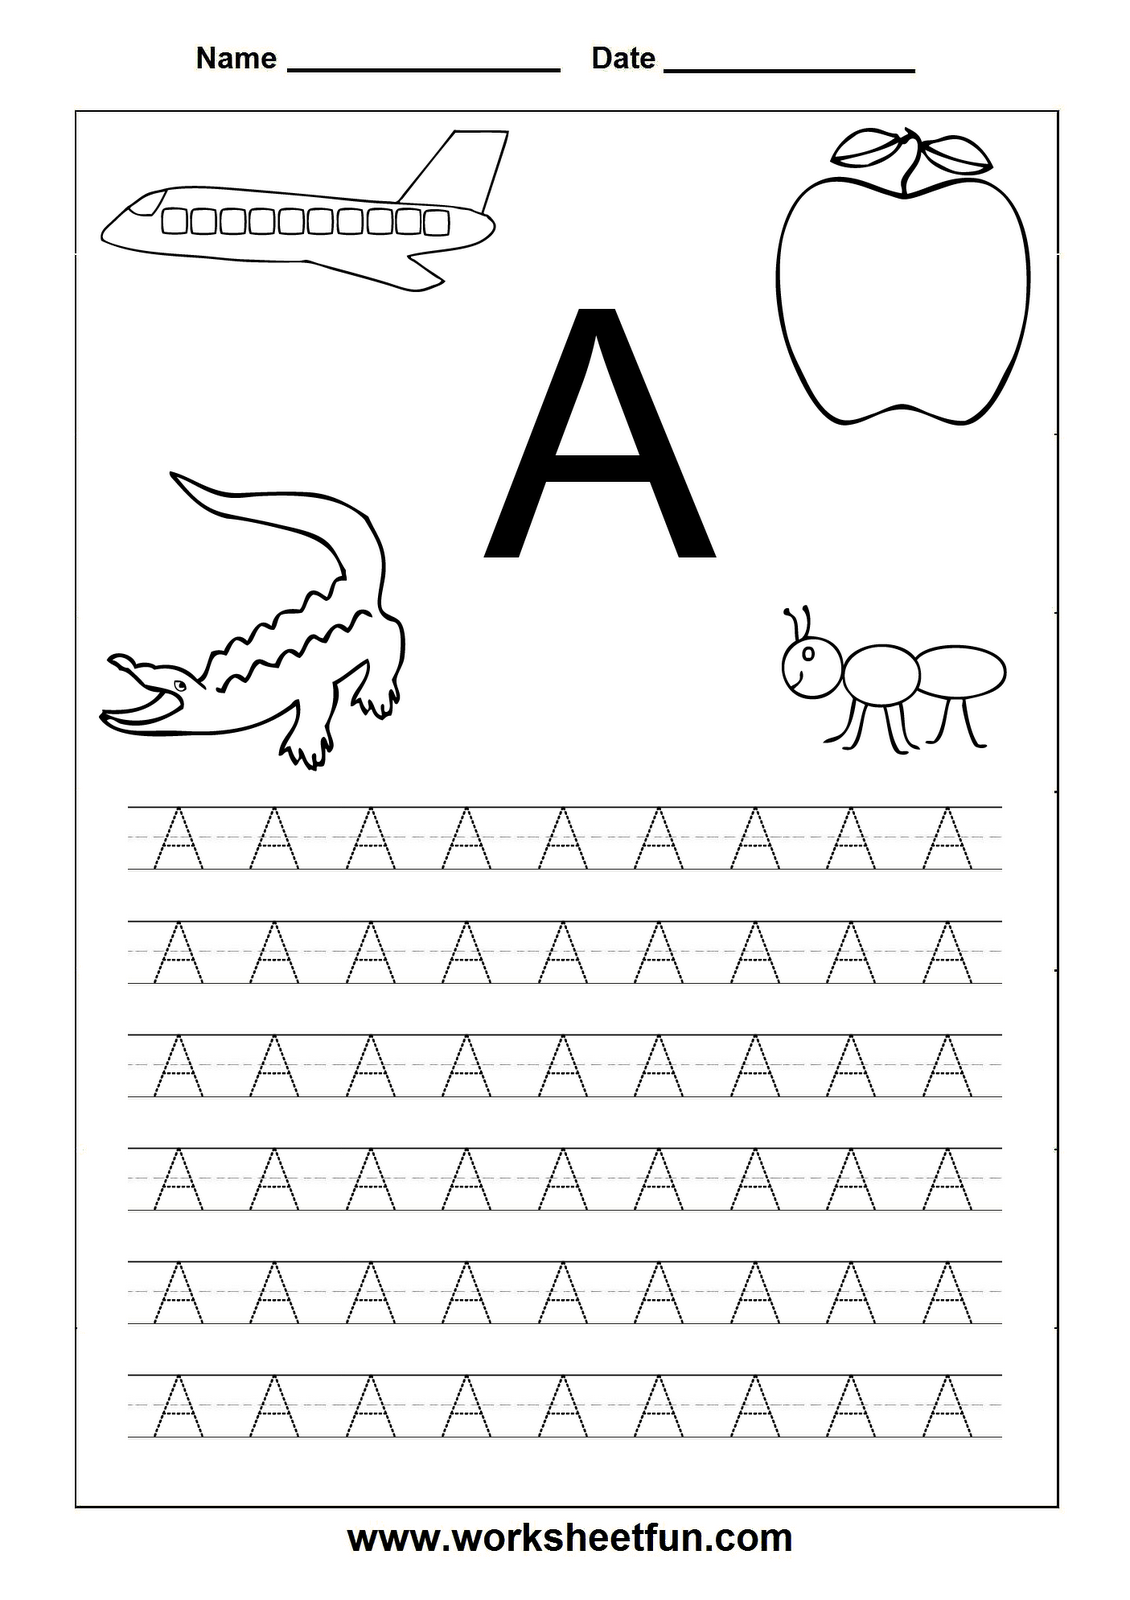 worksheet Alphabet Tracing Worksheet a z capital letter tracing worksheets there are plenty more on various subjects on